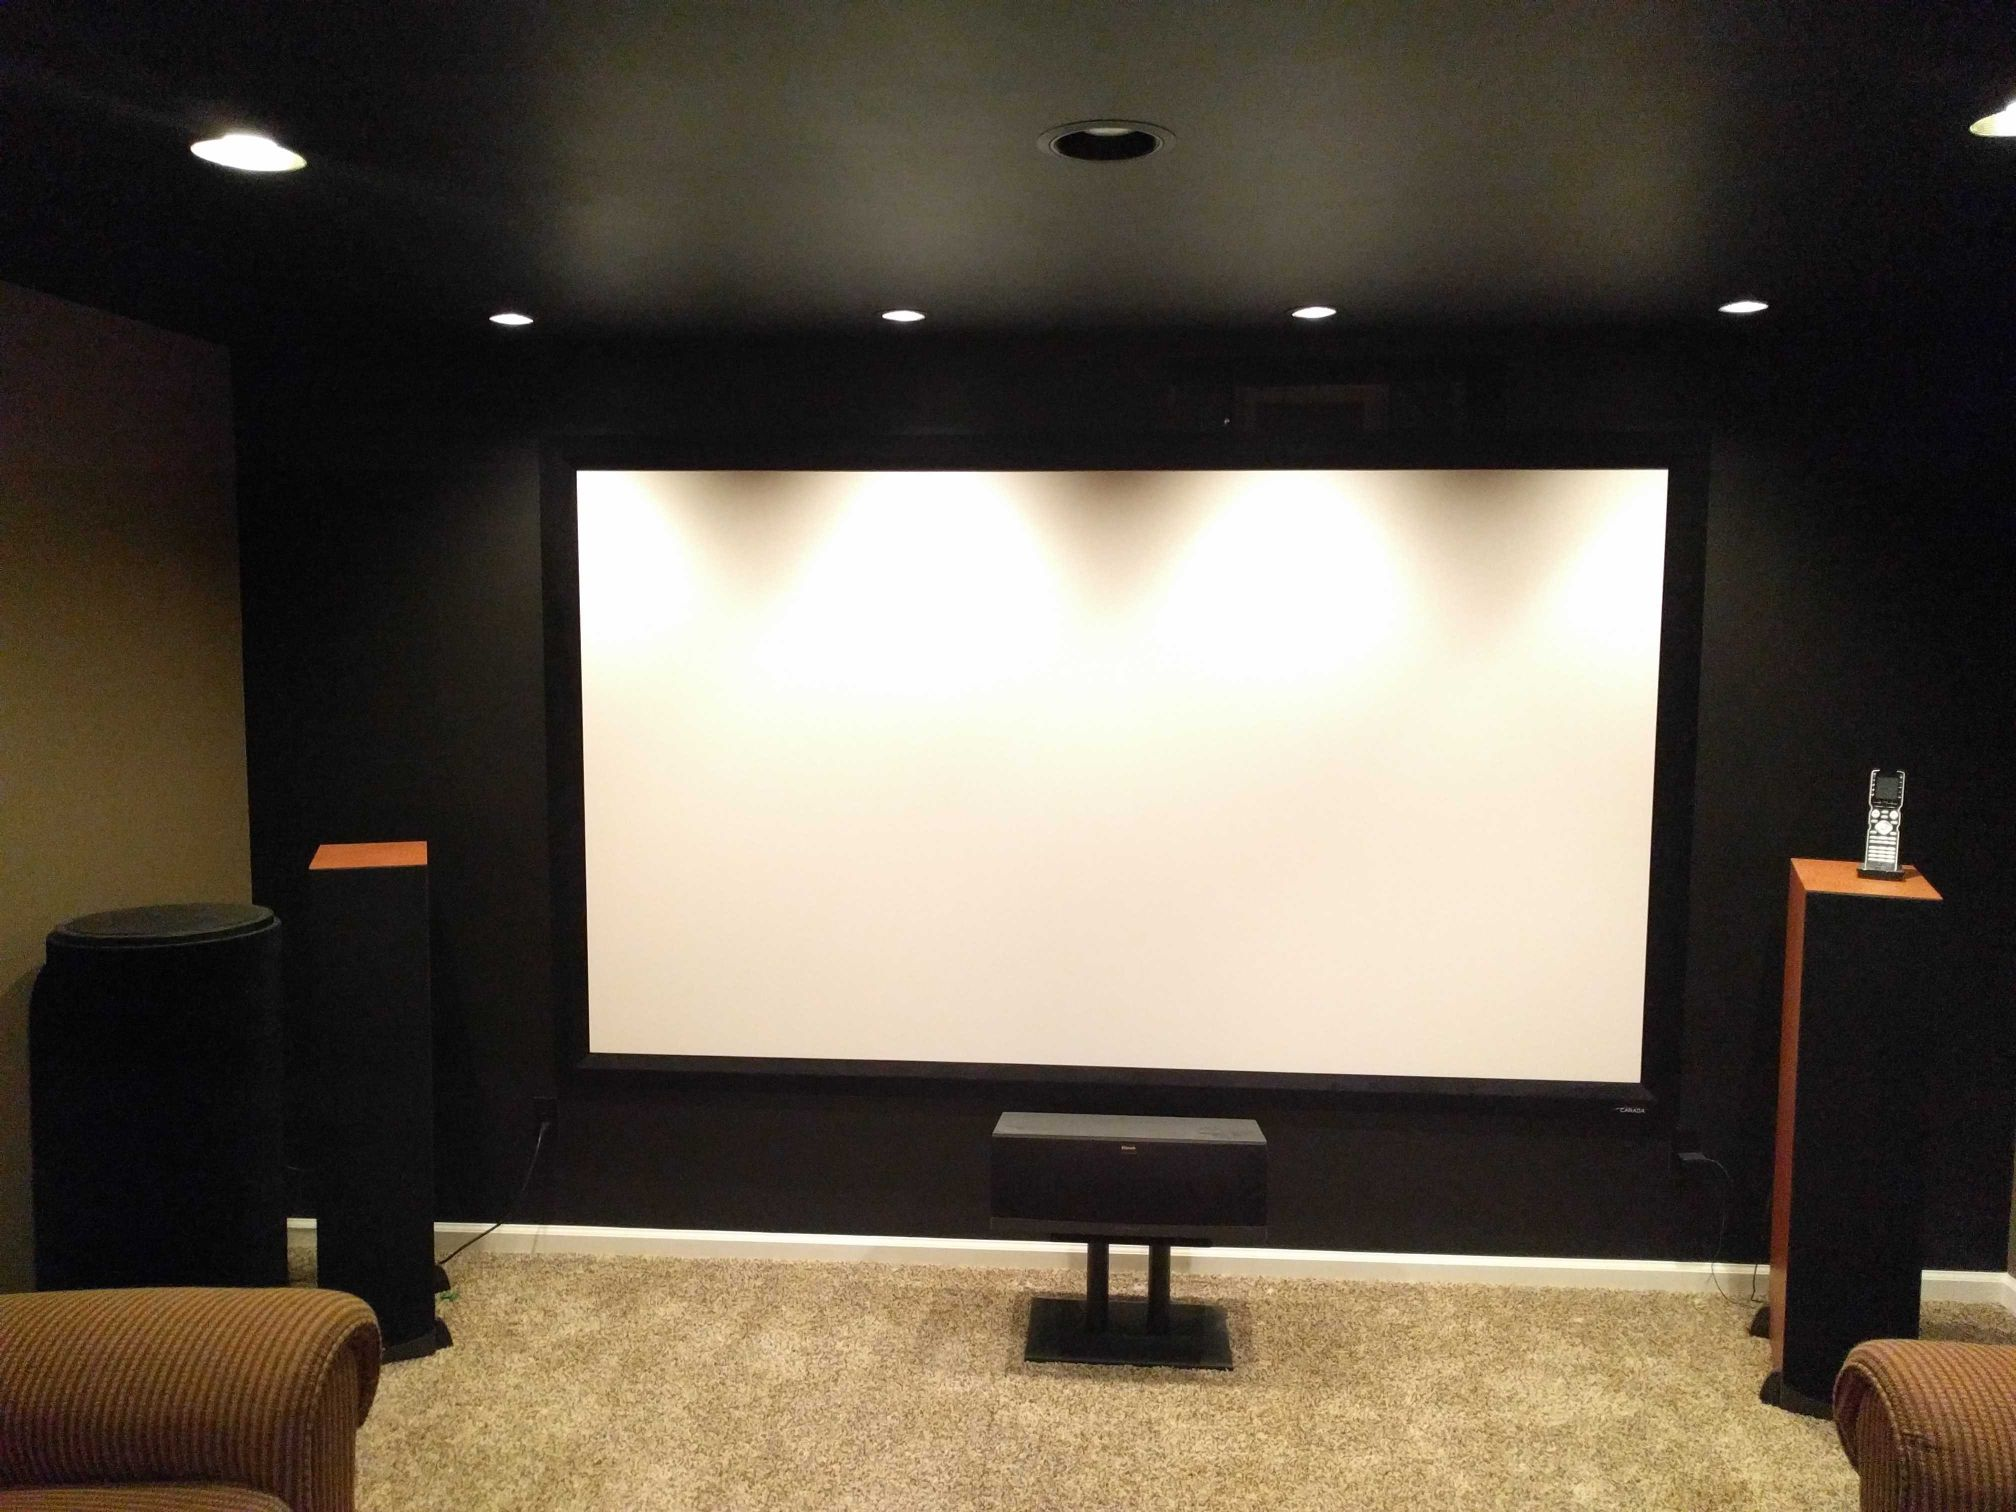 best choice for front wall treatments - AVS Forum | Home Theater ...